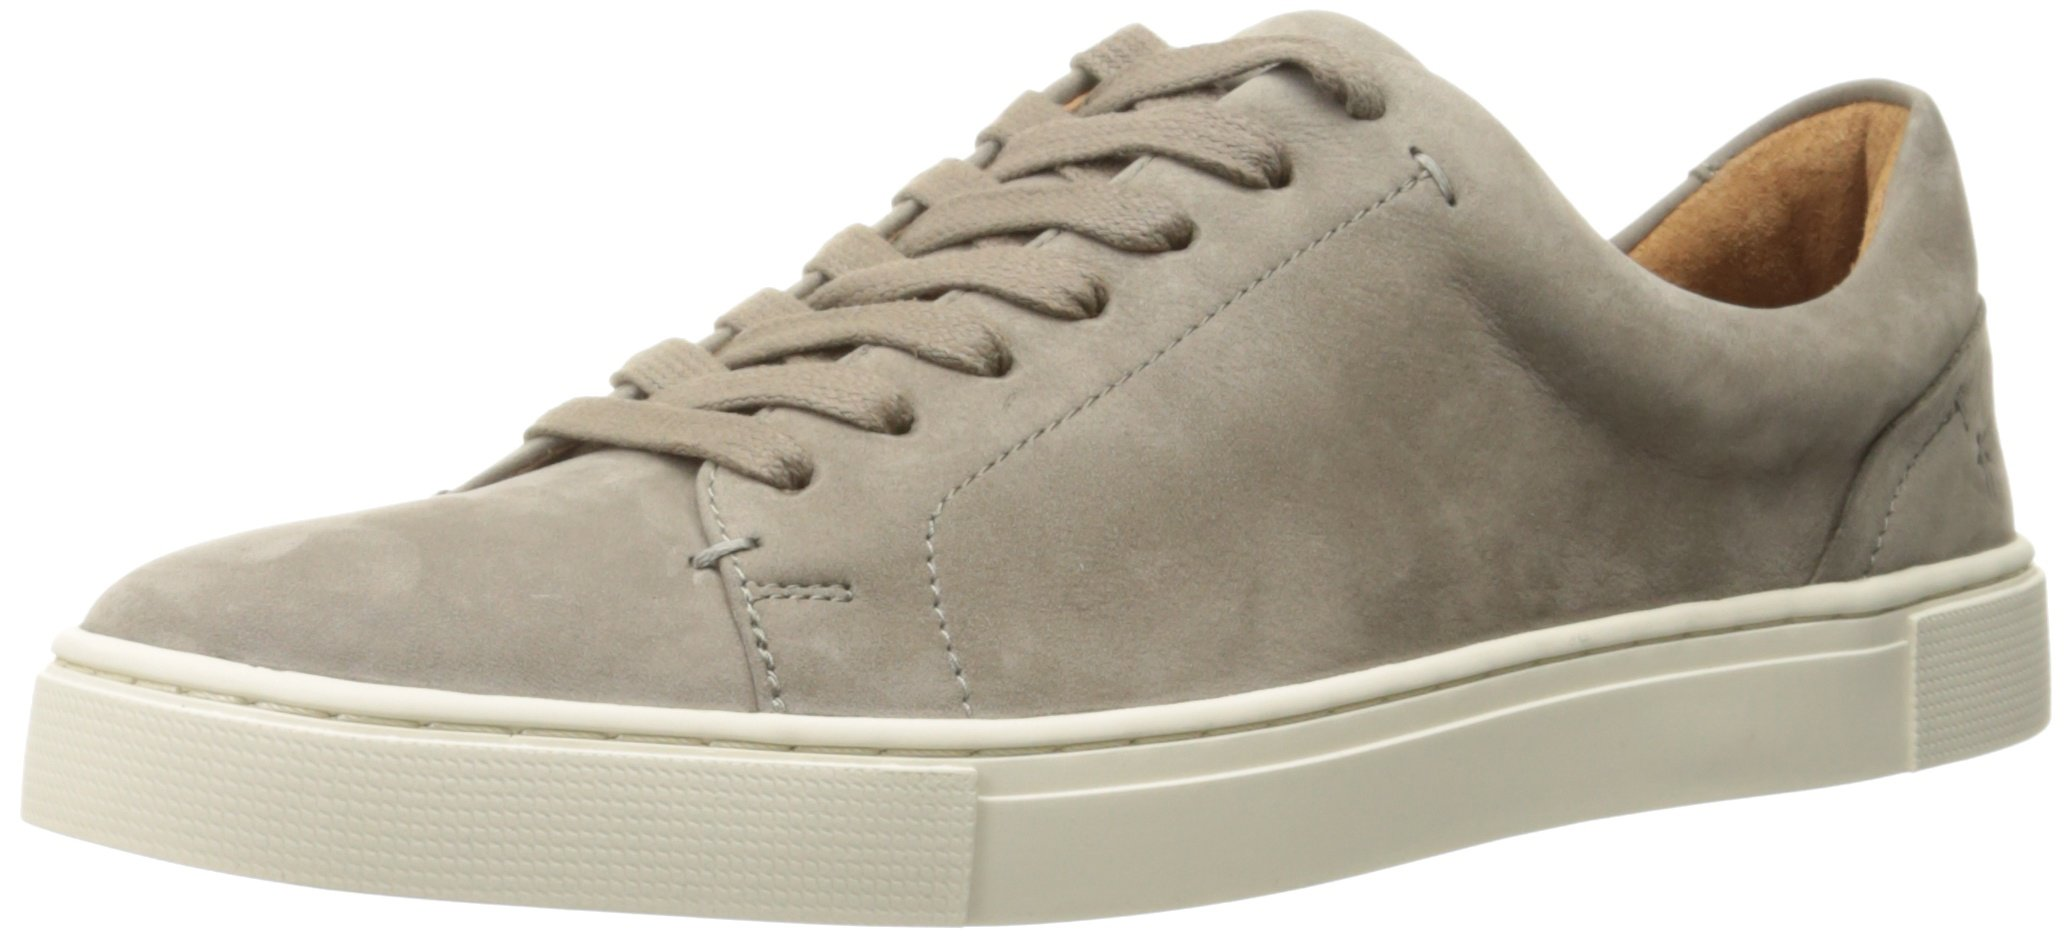 FRYE Women's Ivy Low LACE Fashion Sneaker, Grey Soft Tumbled Nubuck, 9.5 M US